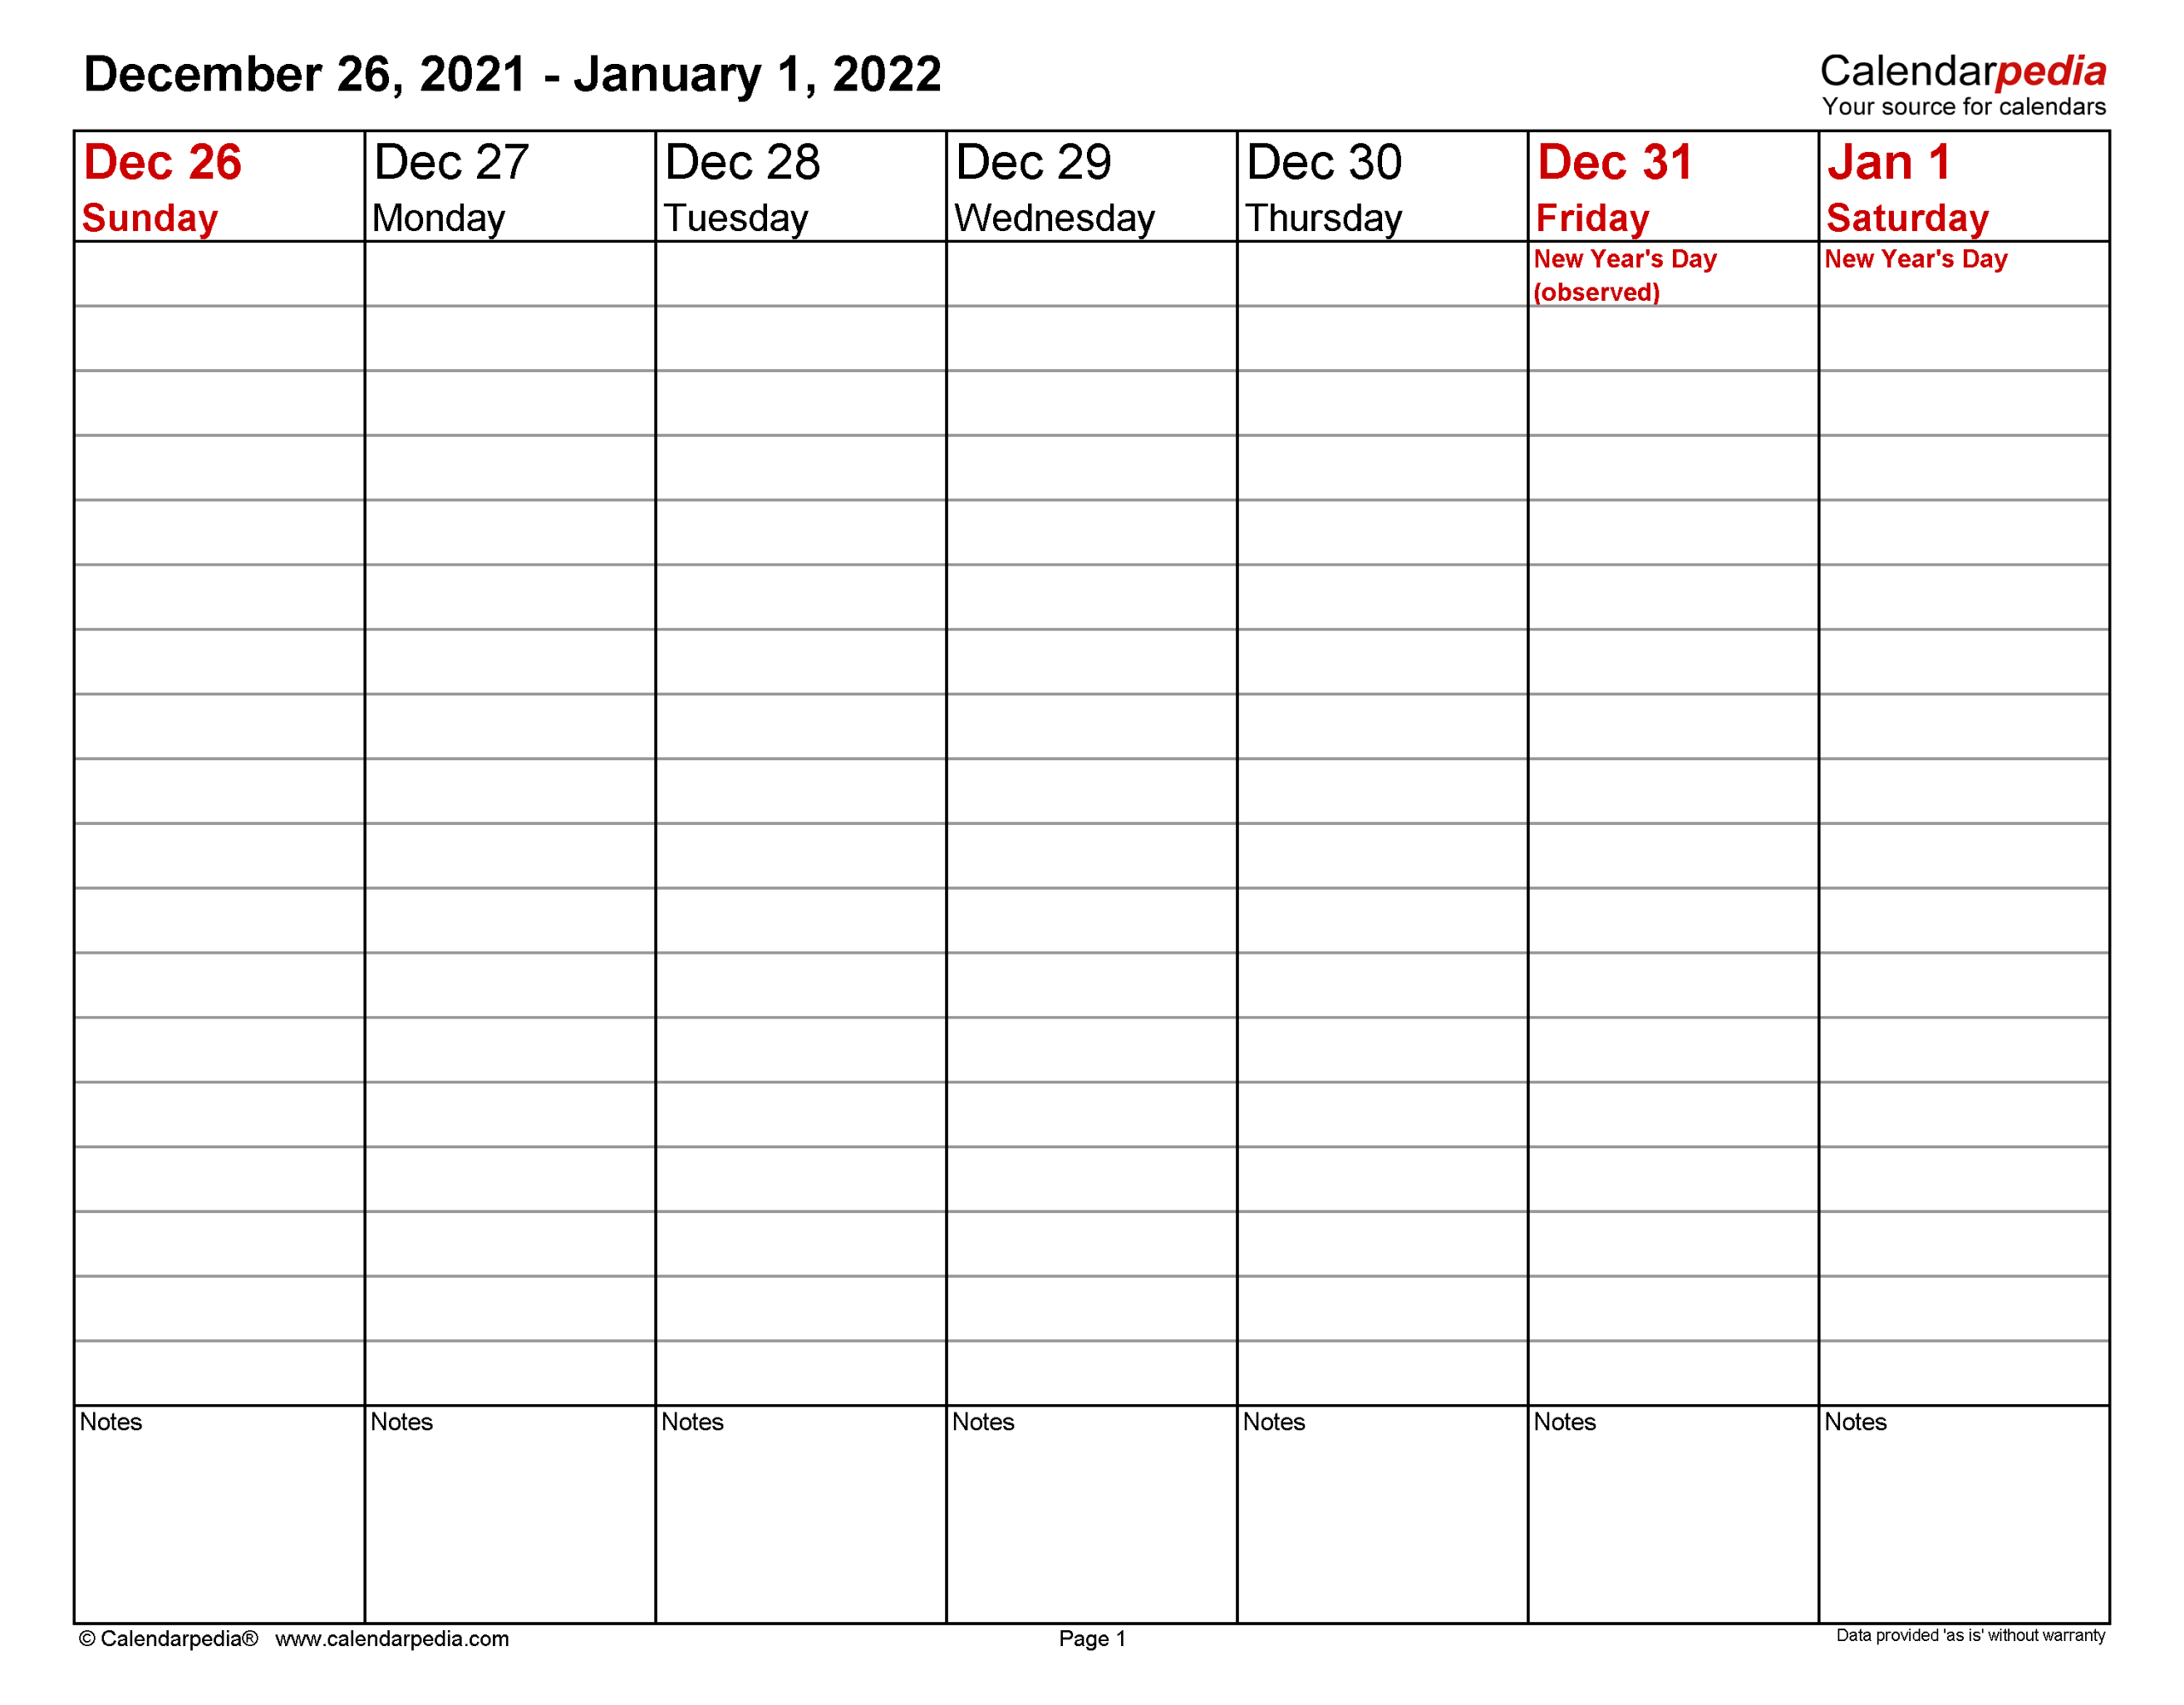 Weekly Calendars 2022 For Excel - 12 Free Printable Templates inside Free Green Printable Daily Planner 2022 Pdf Image